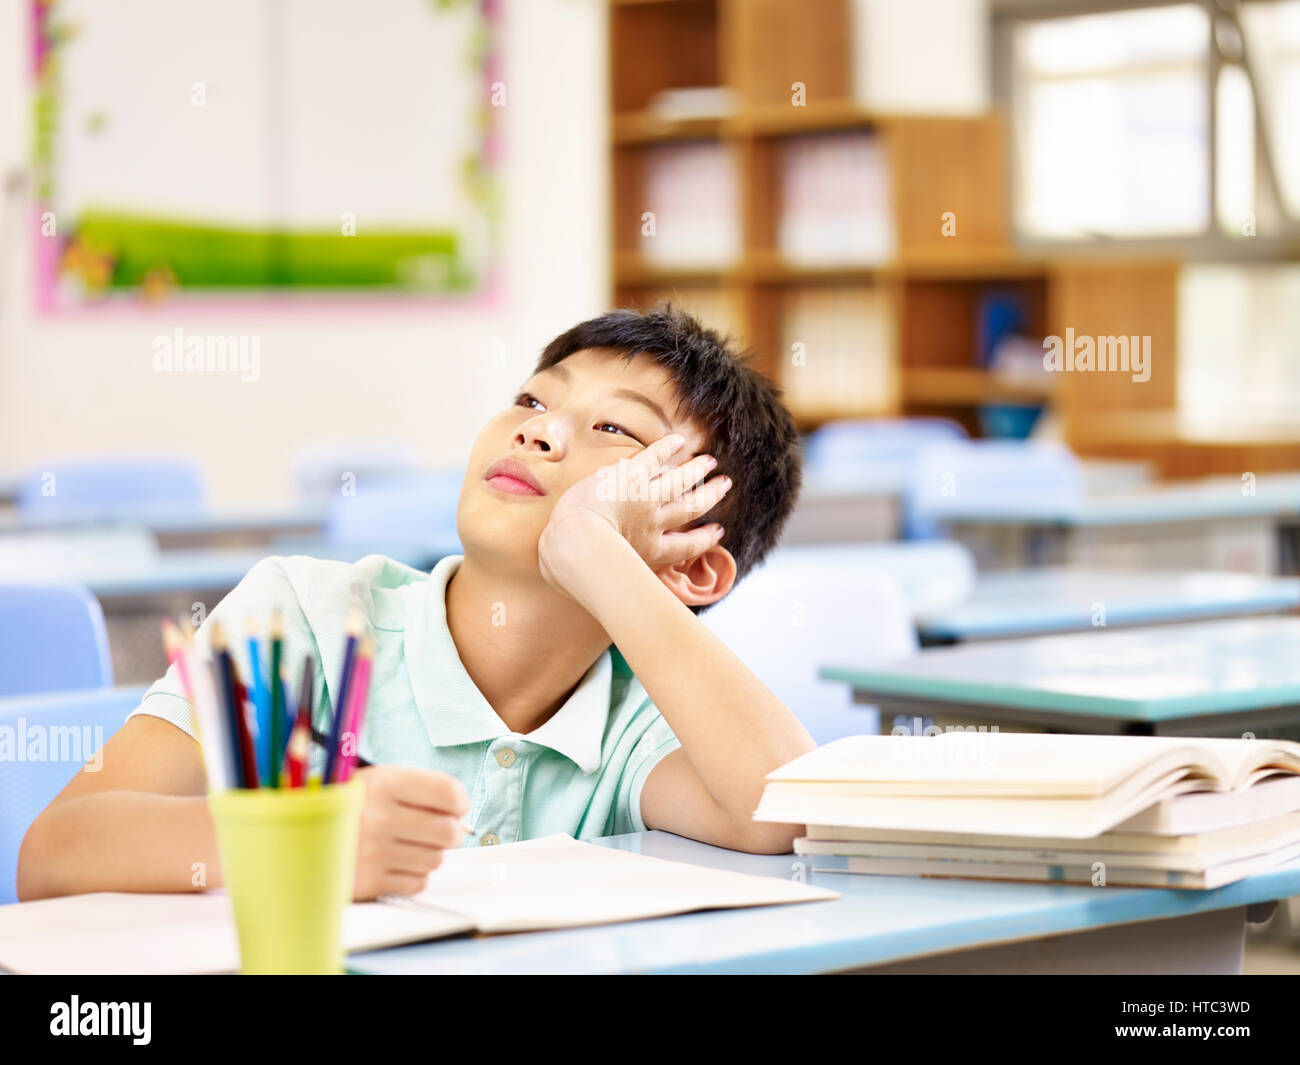 asian elementary schoolboy thinking while doing homework in classroom, looking up hand on cheek. - Stock Image